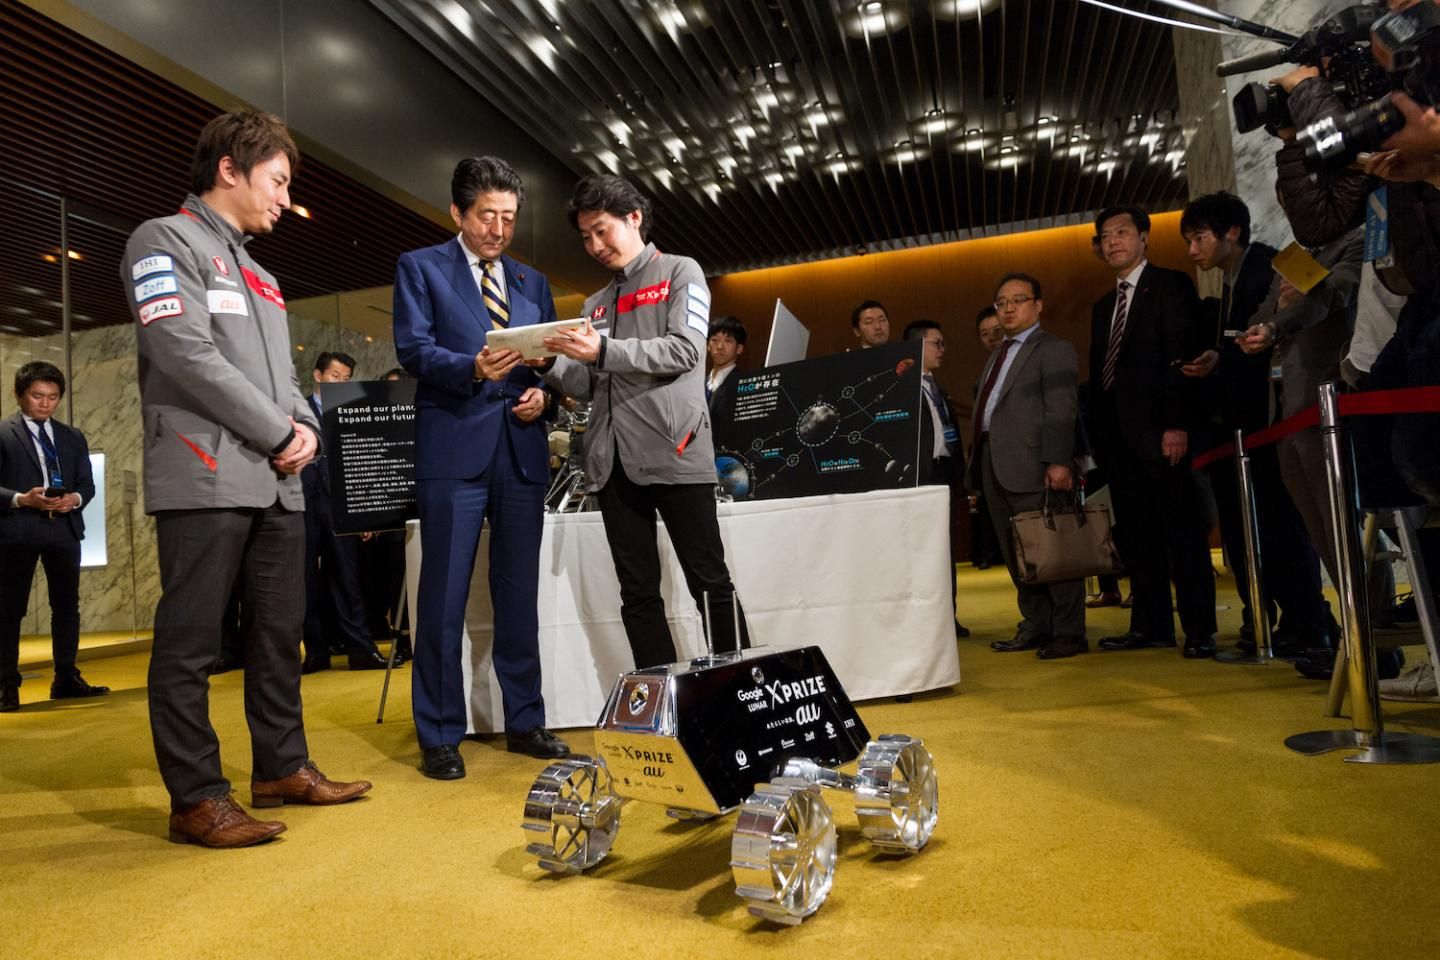 ispace's CEO Takeshi Hakamada and COO Takahiro Nakamura presenting their program to Japanese Prime Minister Shinzo Abe.